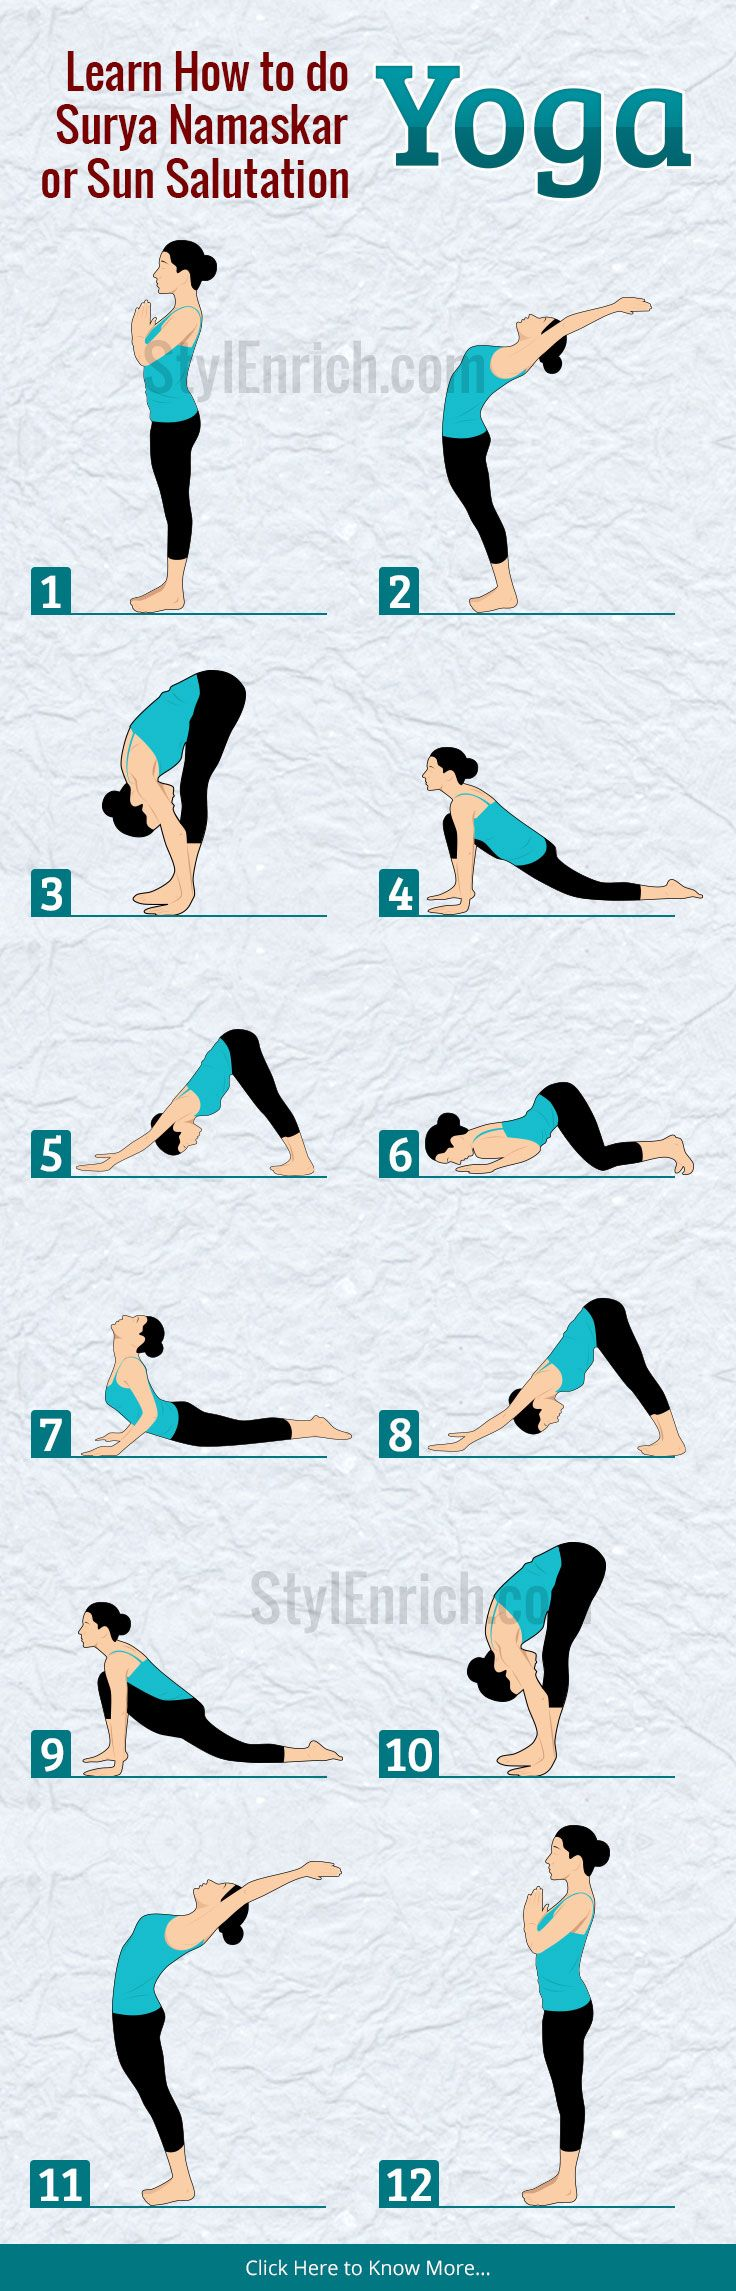 #SuryaNamaskar #Yoga is all about good health, especially for those, stressed out after day's work. Let's see 12 Steps of Surya Namaskar Yoga and how to do it.